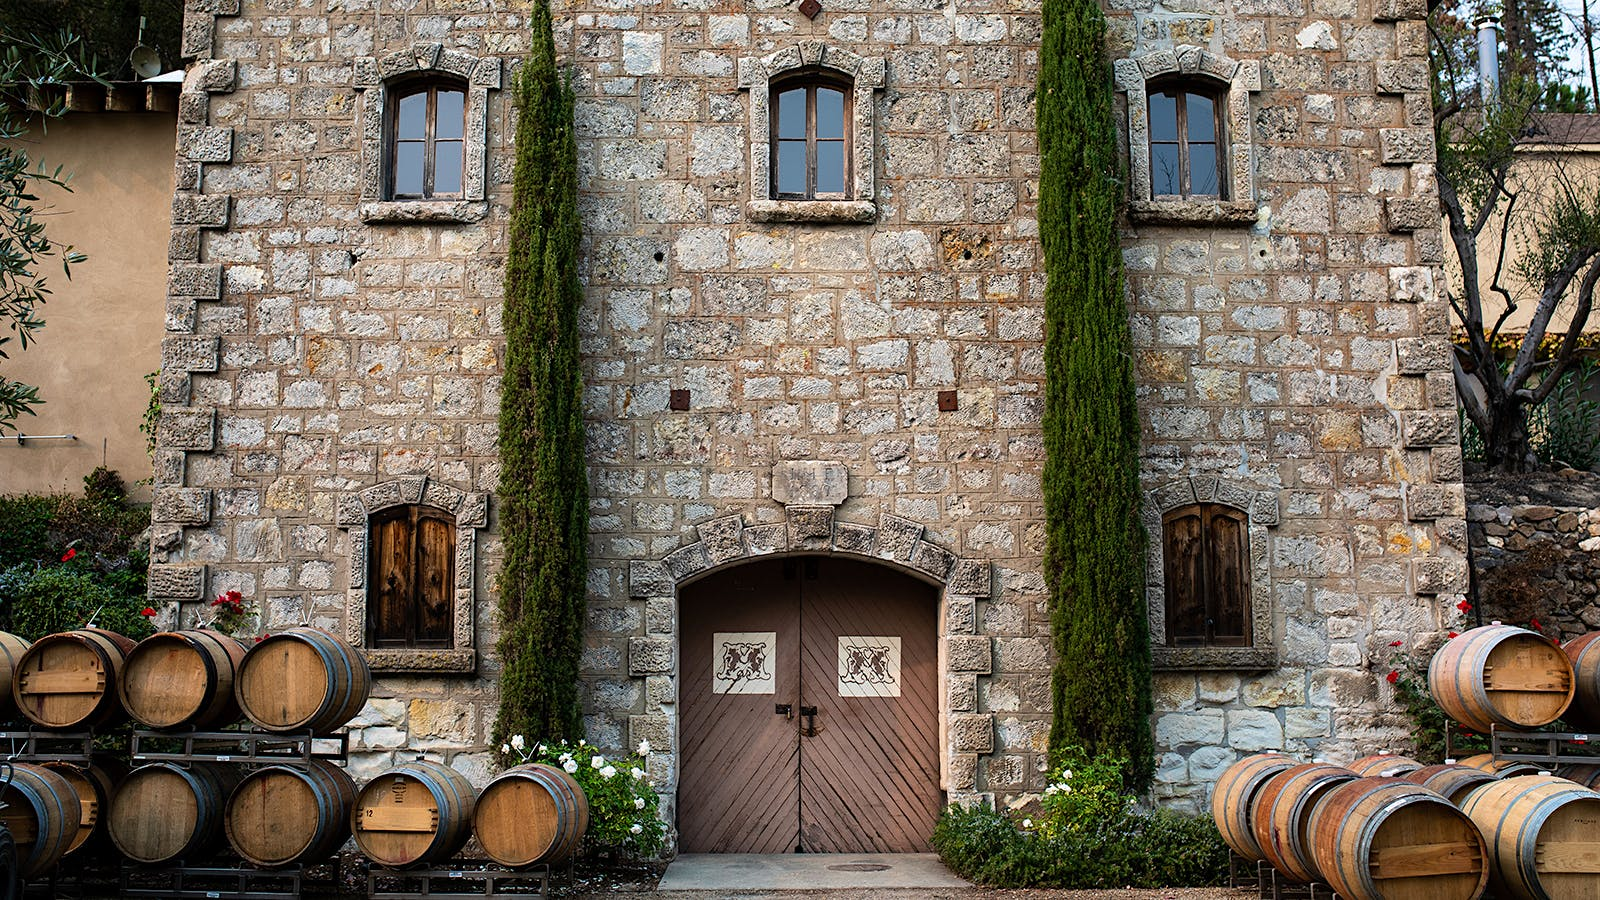 With Auction Napa Valley Canceled, Organizers Offer Rare Napa Wines for Sale